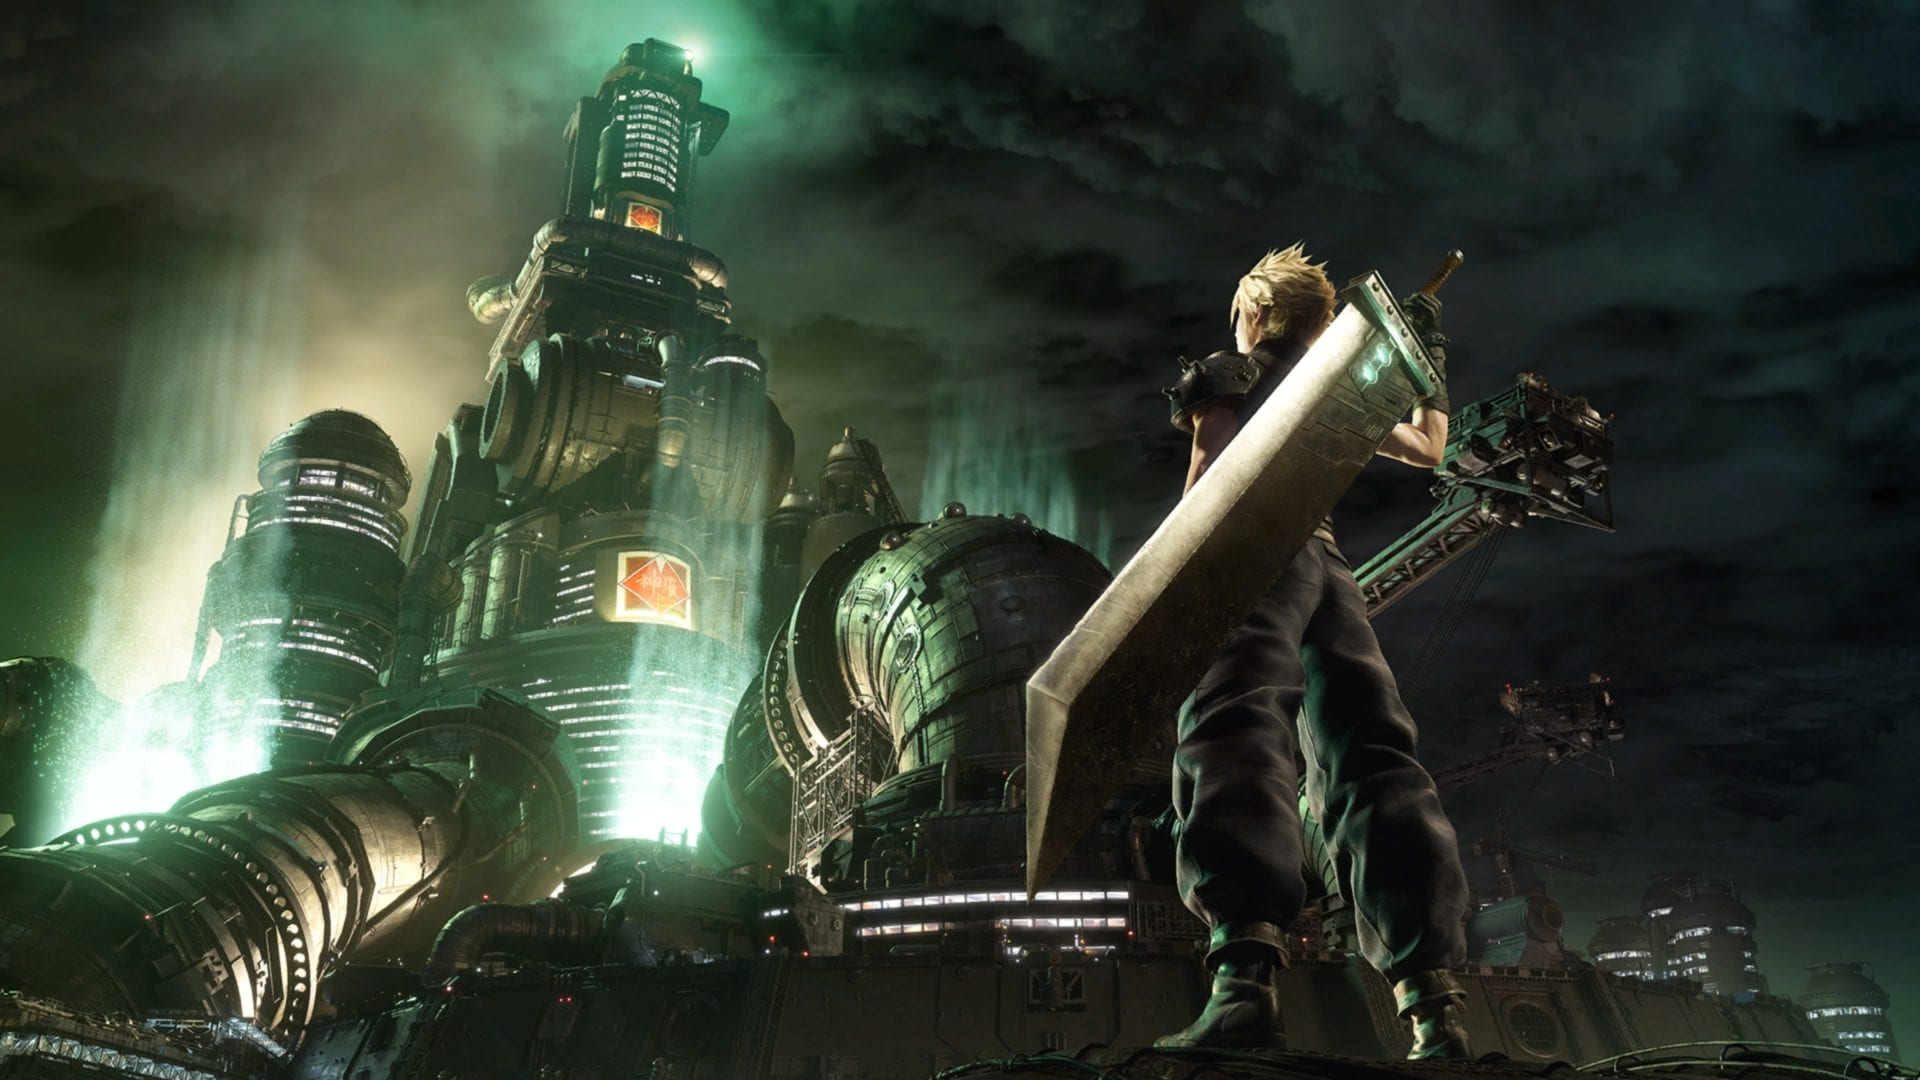 final fantasy 7 remake, master of mimicry, enemy skills